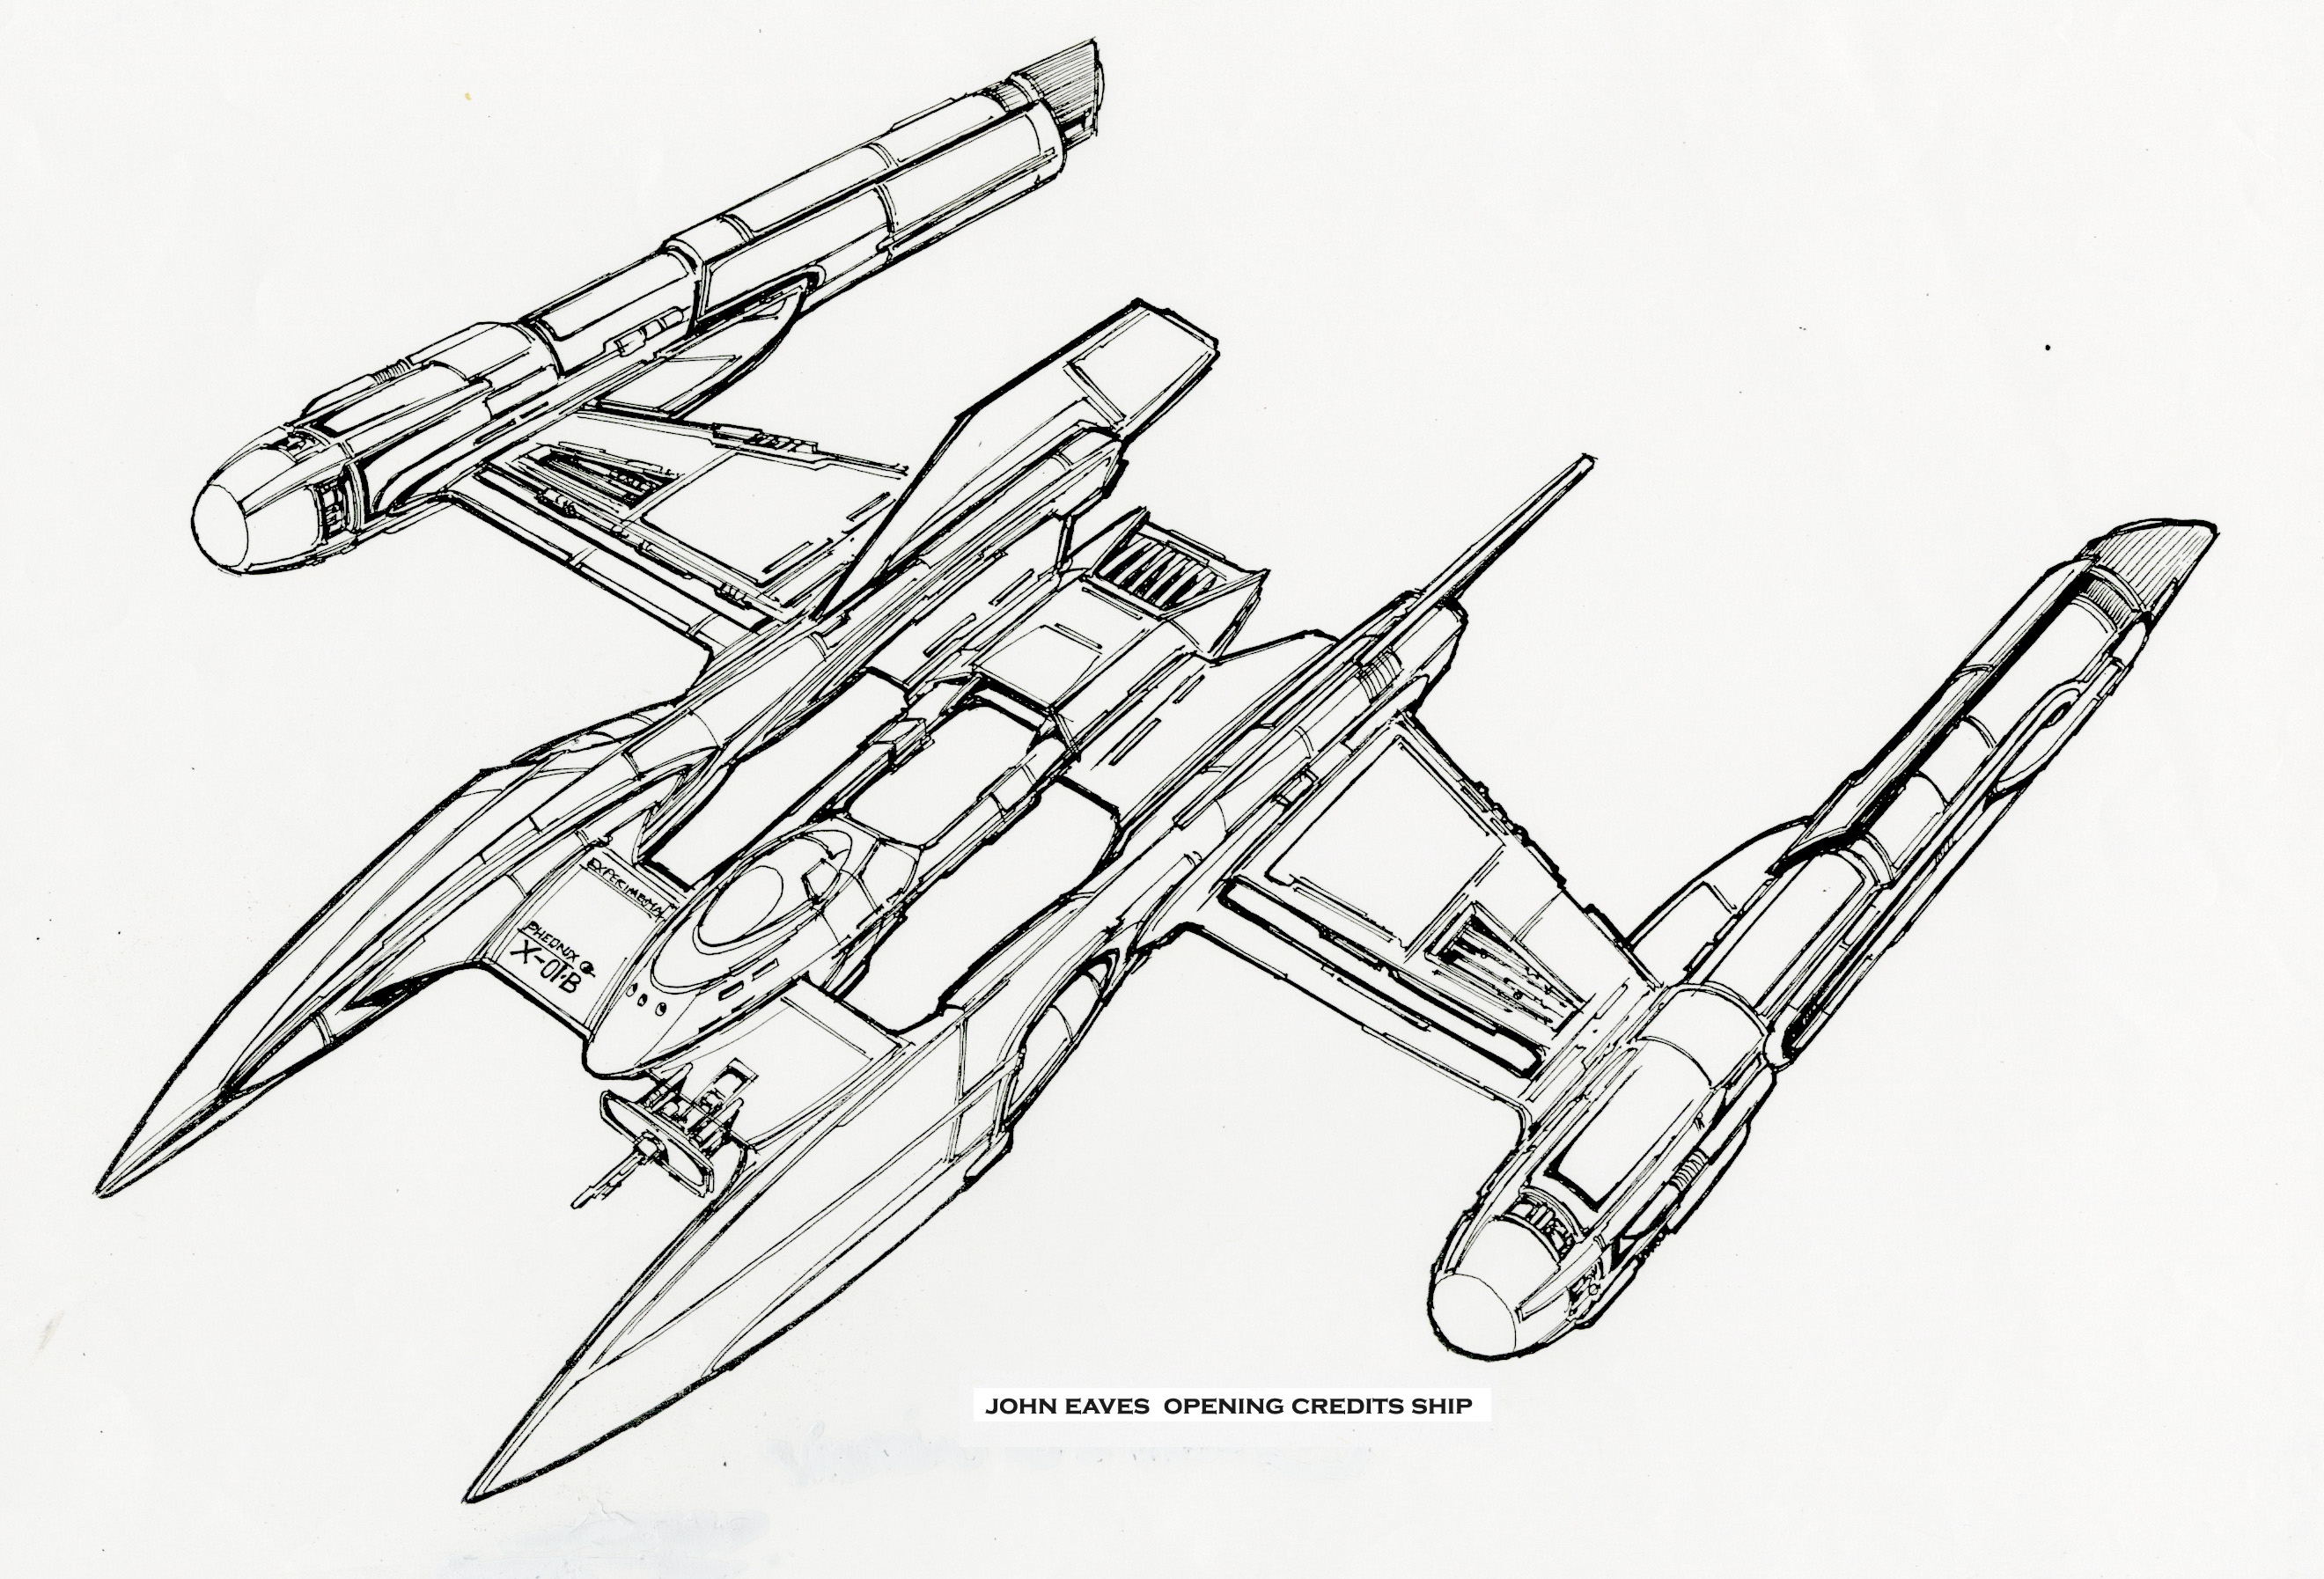 enterprise drawing at getdrawings com free for personal use